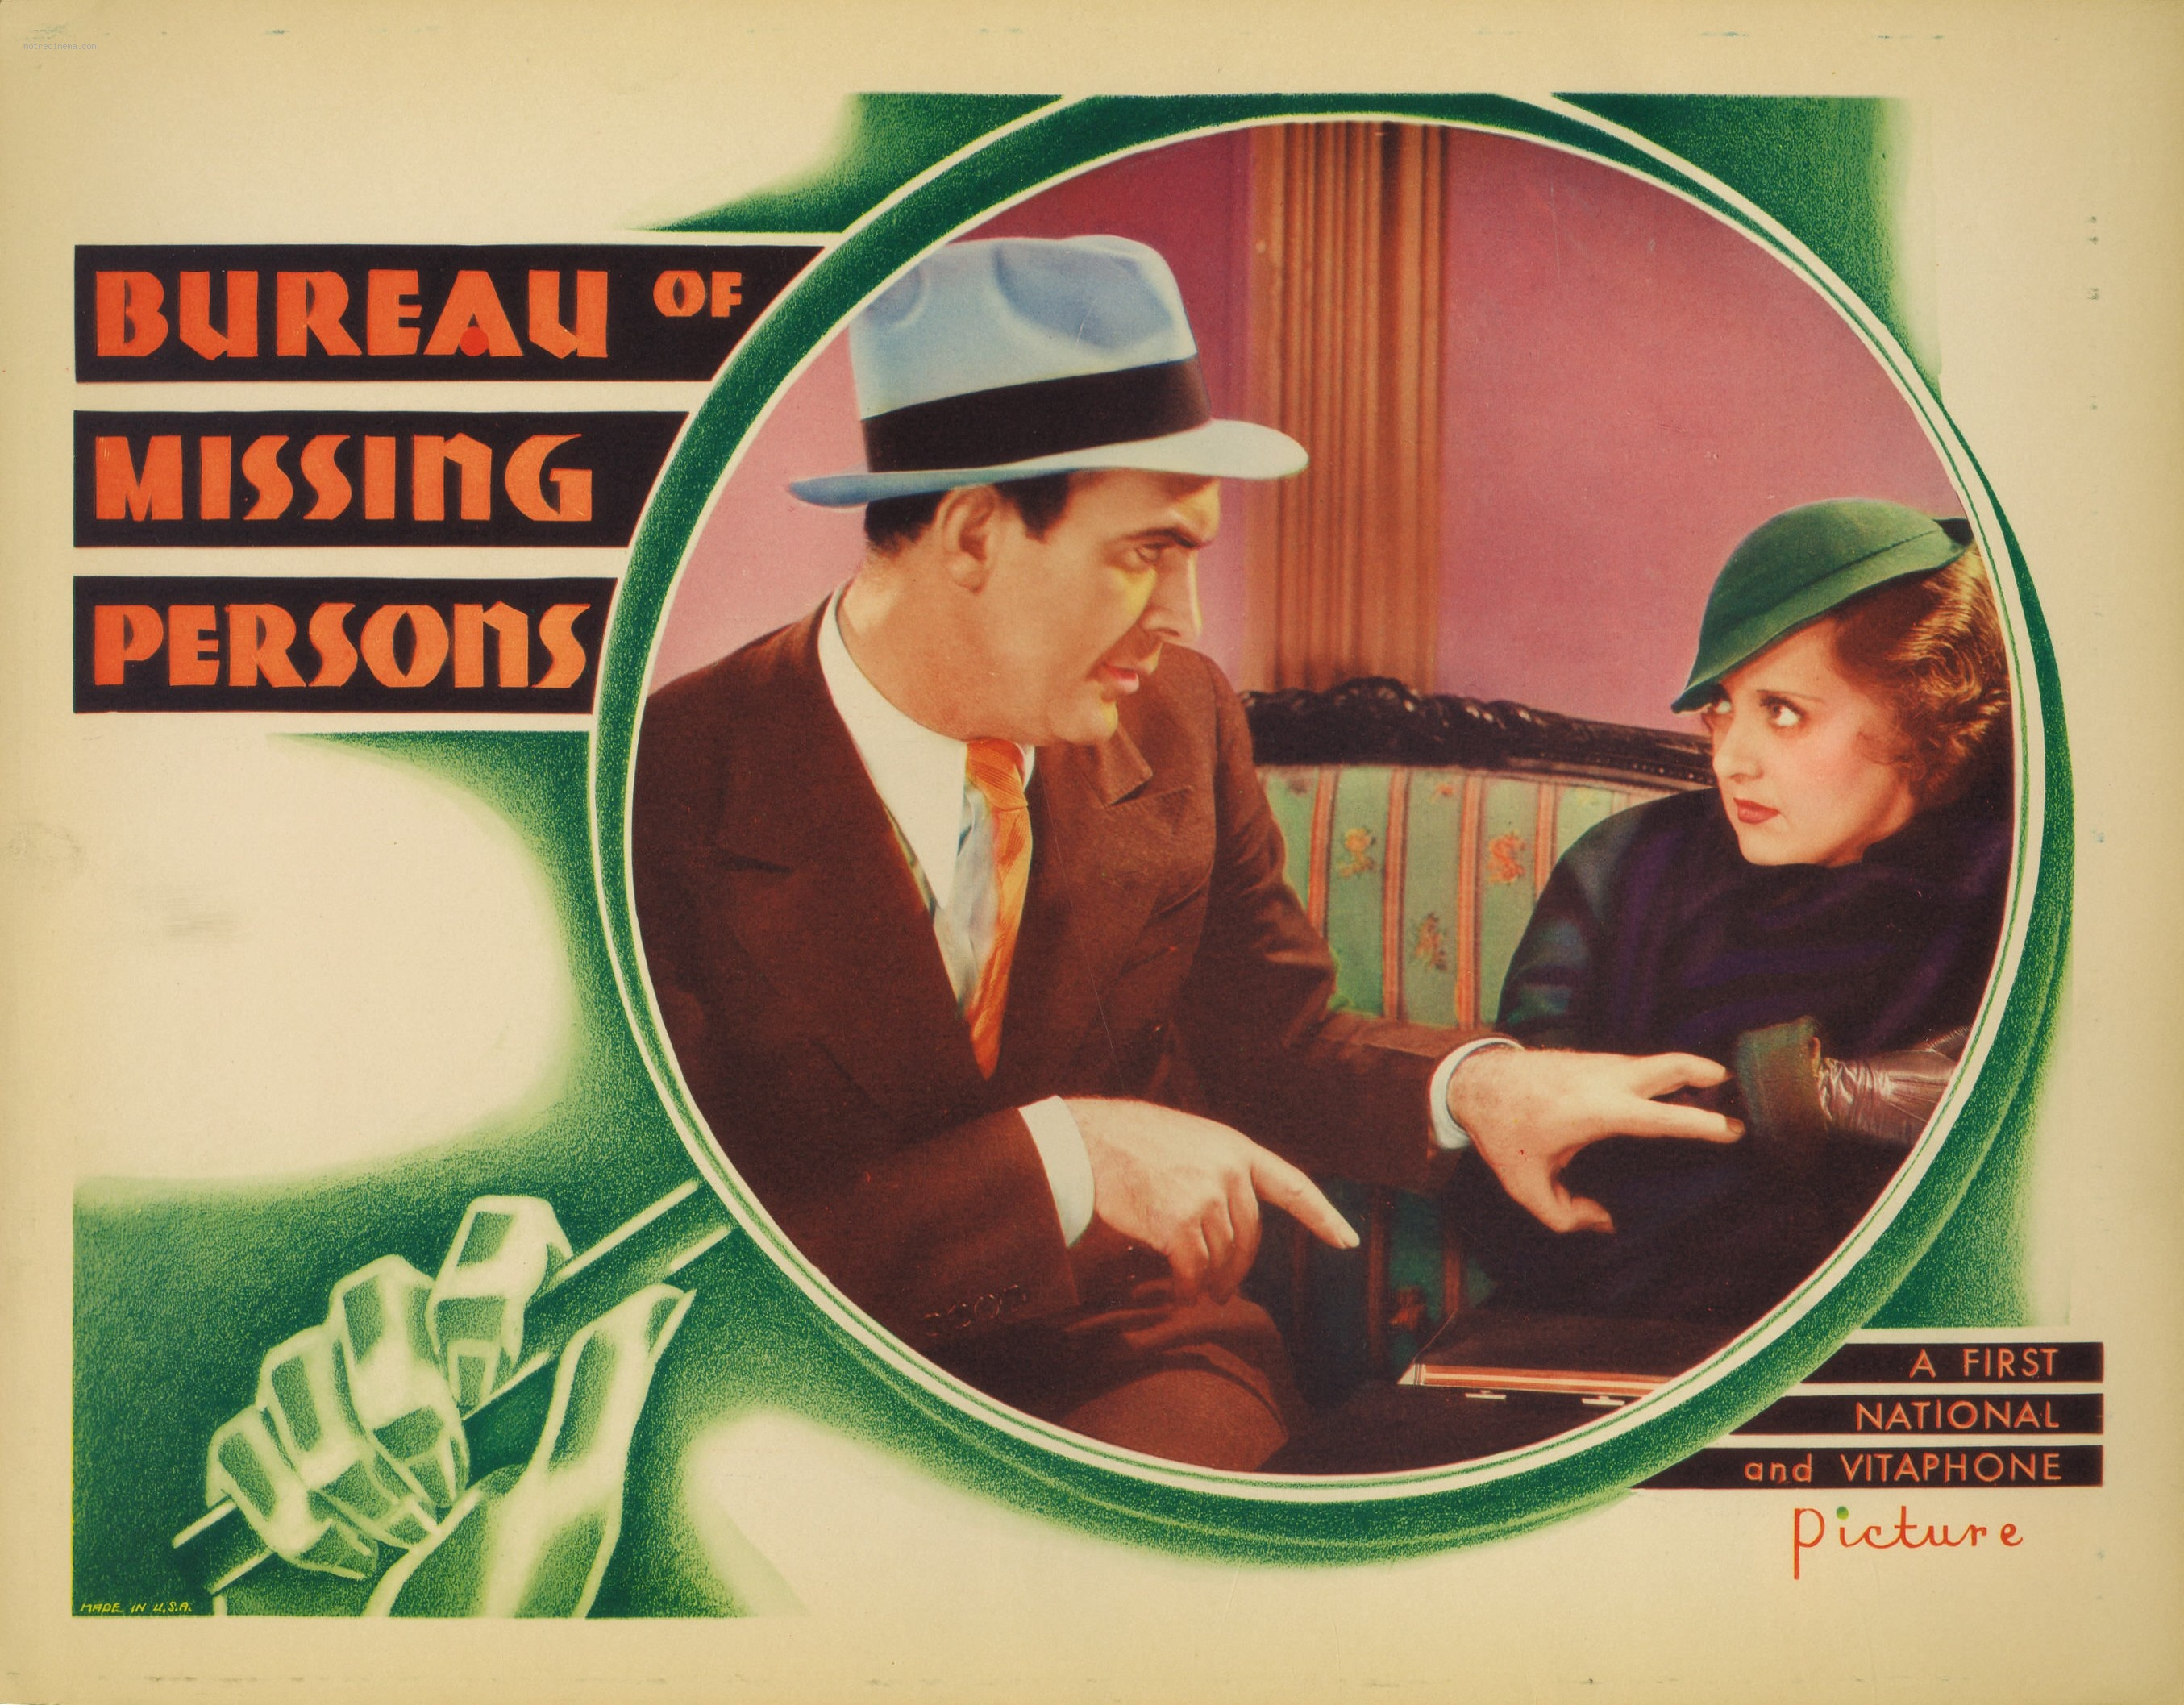 Bette Davis and Pat O'Brien in Bureau of Missing Persons (1933)